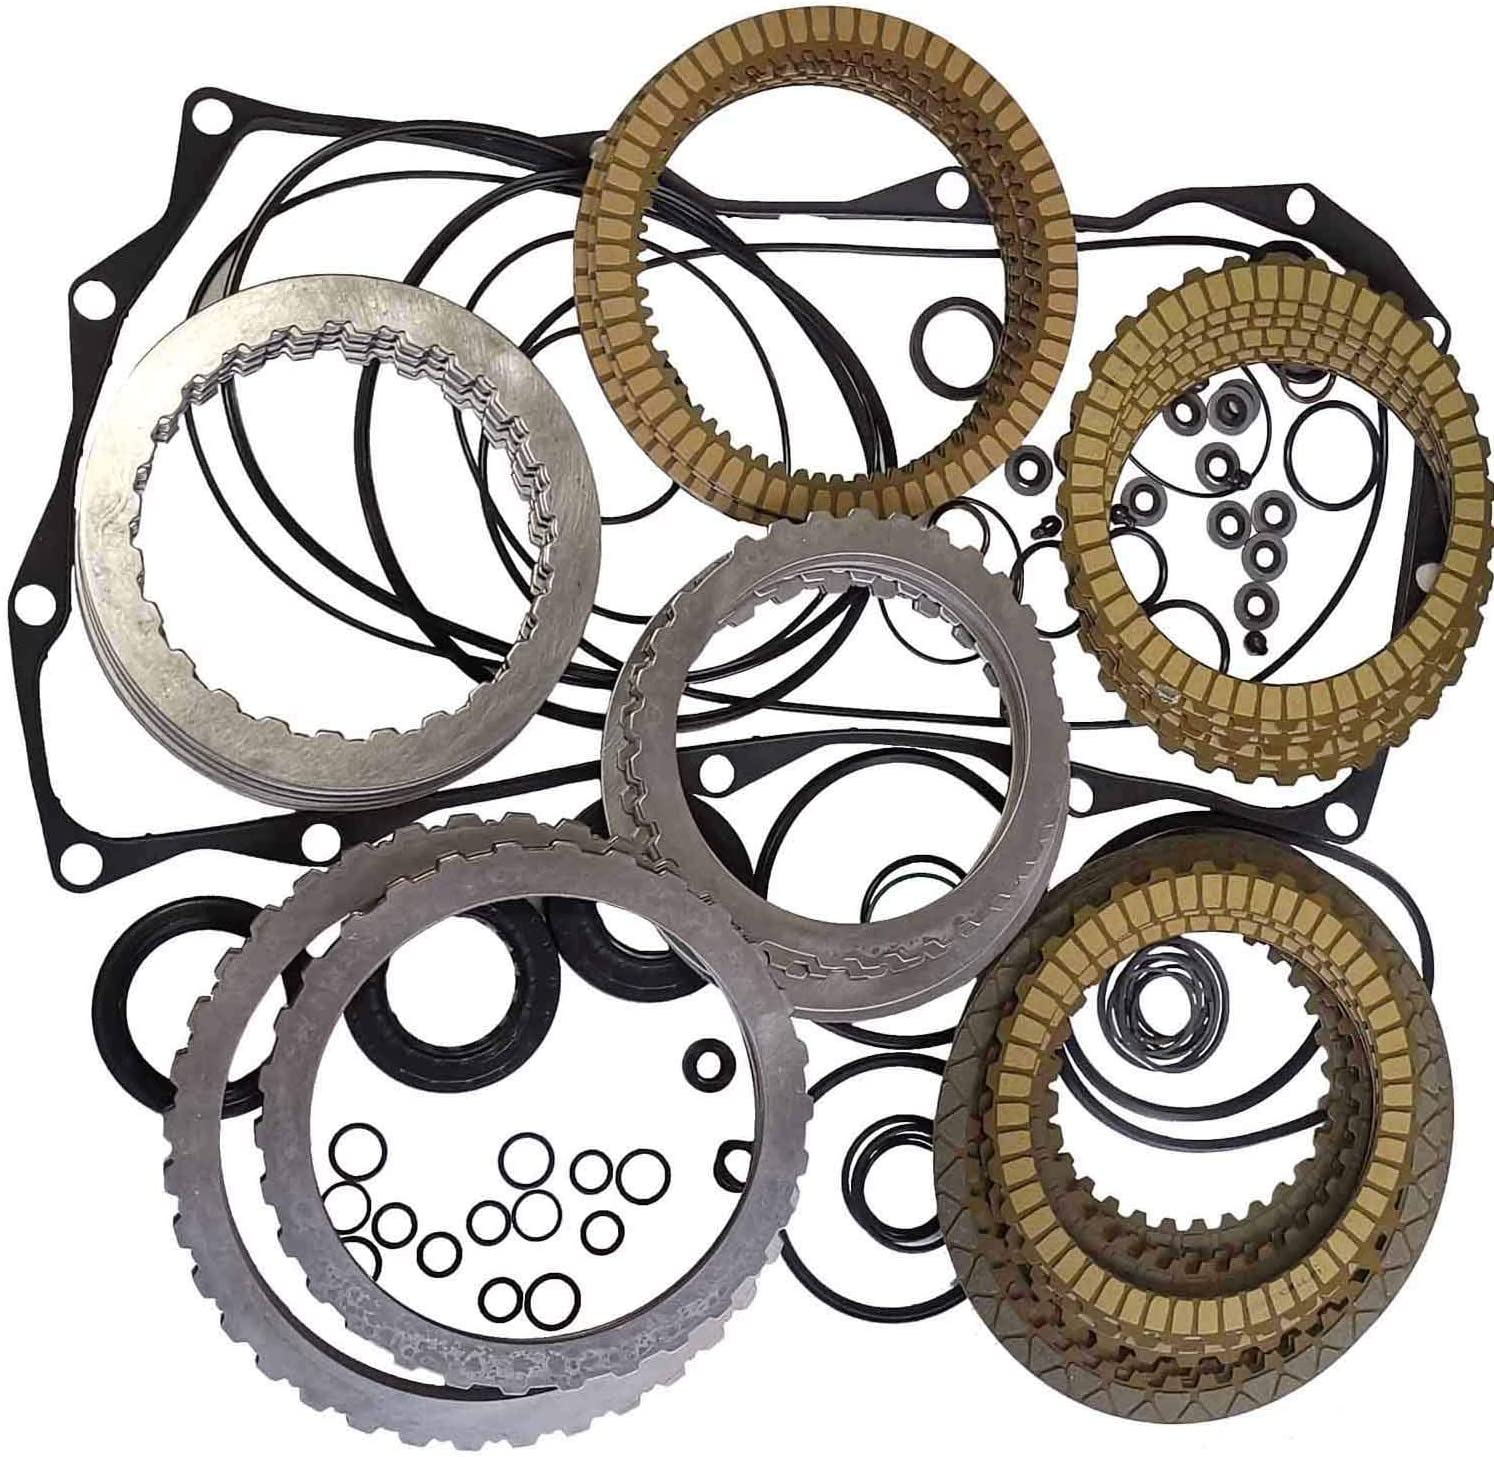 Solarhome AB60 AB60E AB60F Transmission for Rebuild Kit Lexus LX New Special Campaign arrival